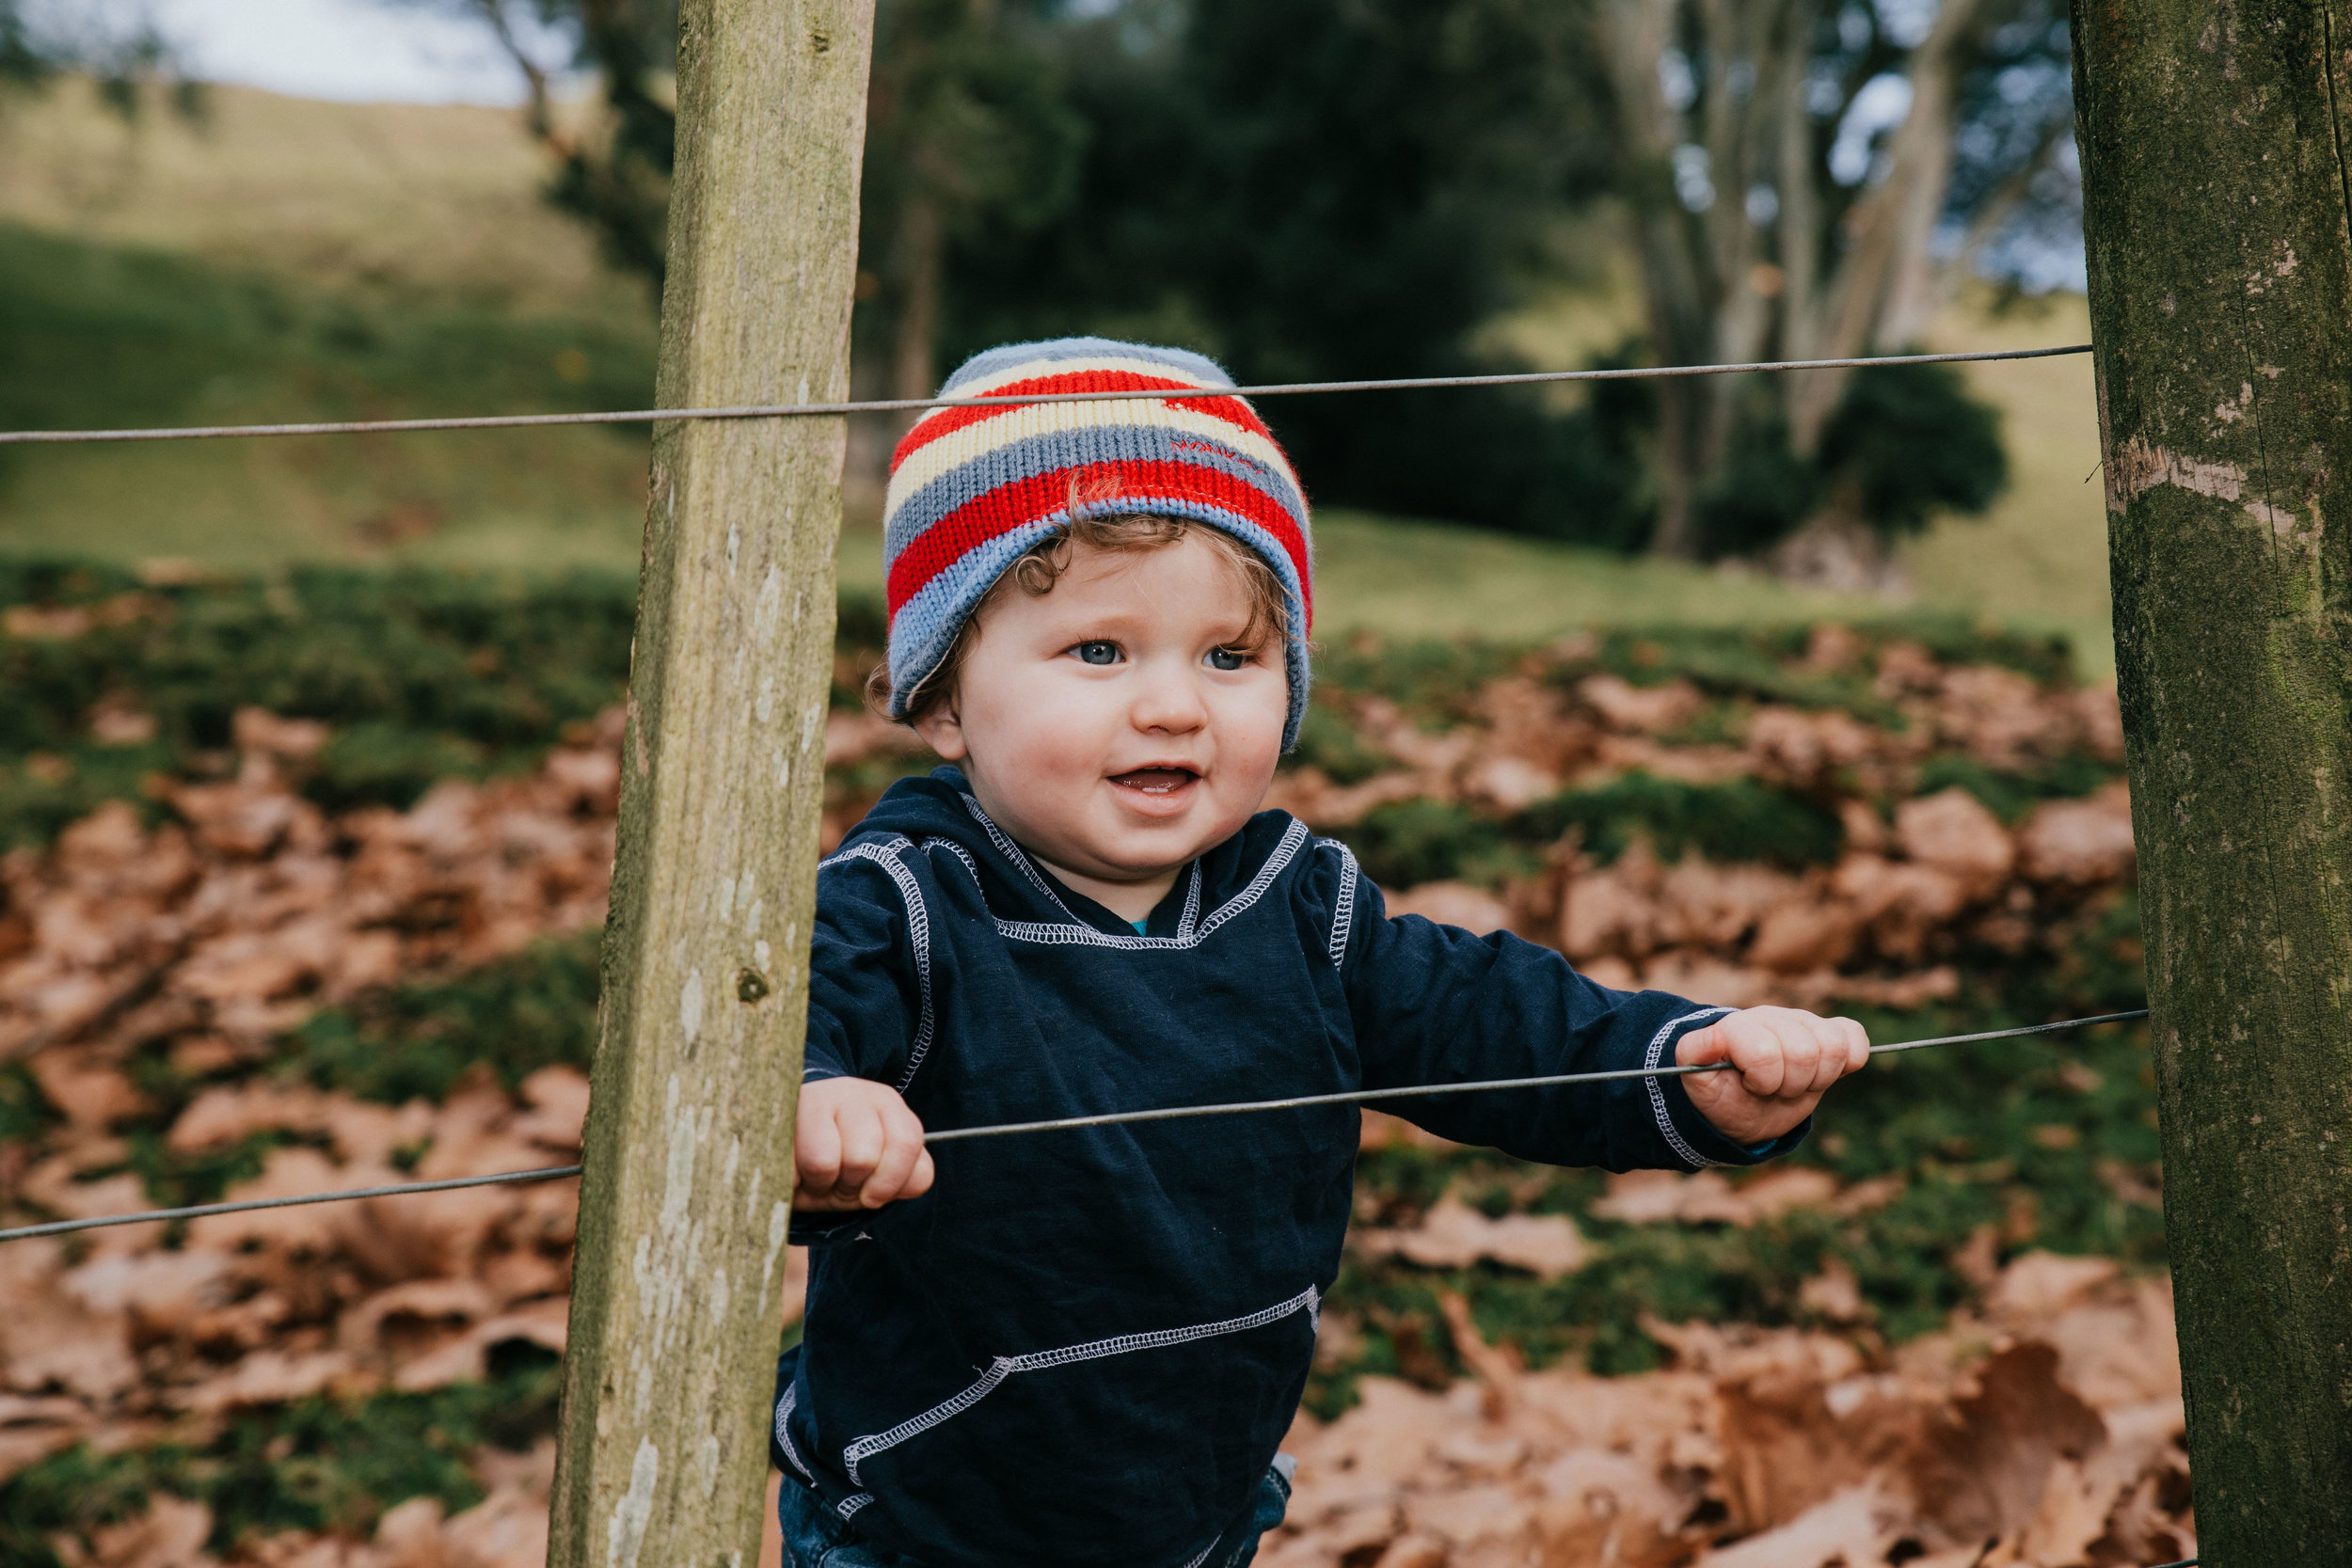 BUNDLES - Maternity session + Newborn session. Cost: £600Newborn session + milestone mini portrait sessions at 6 months and 1 year. Cost: £800Maternity session + Newborn session + milestone mini portrait sessions at 6 months and 1 year. Cost: £1,000.